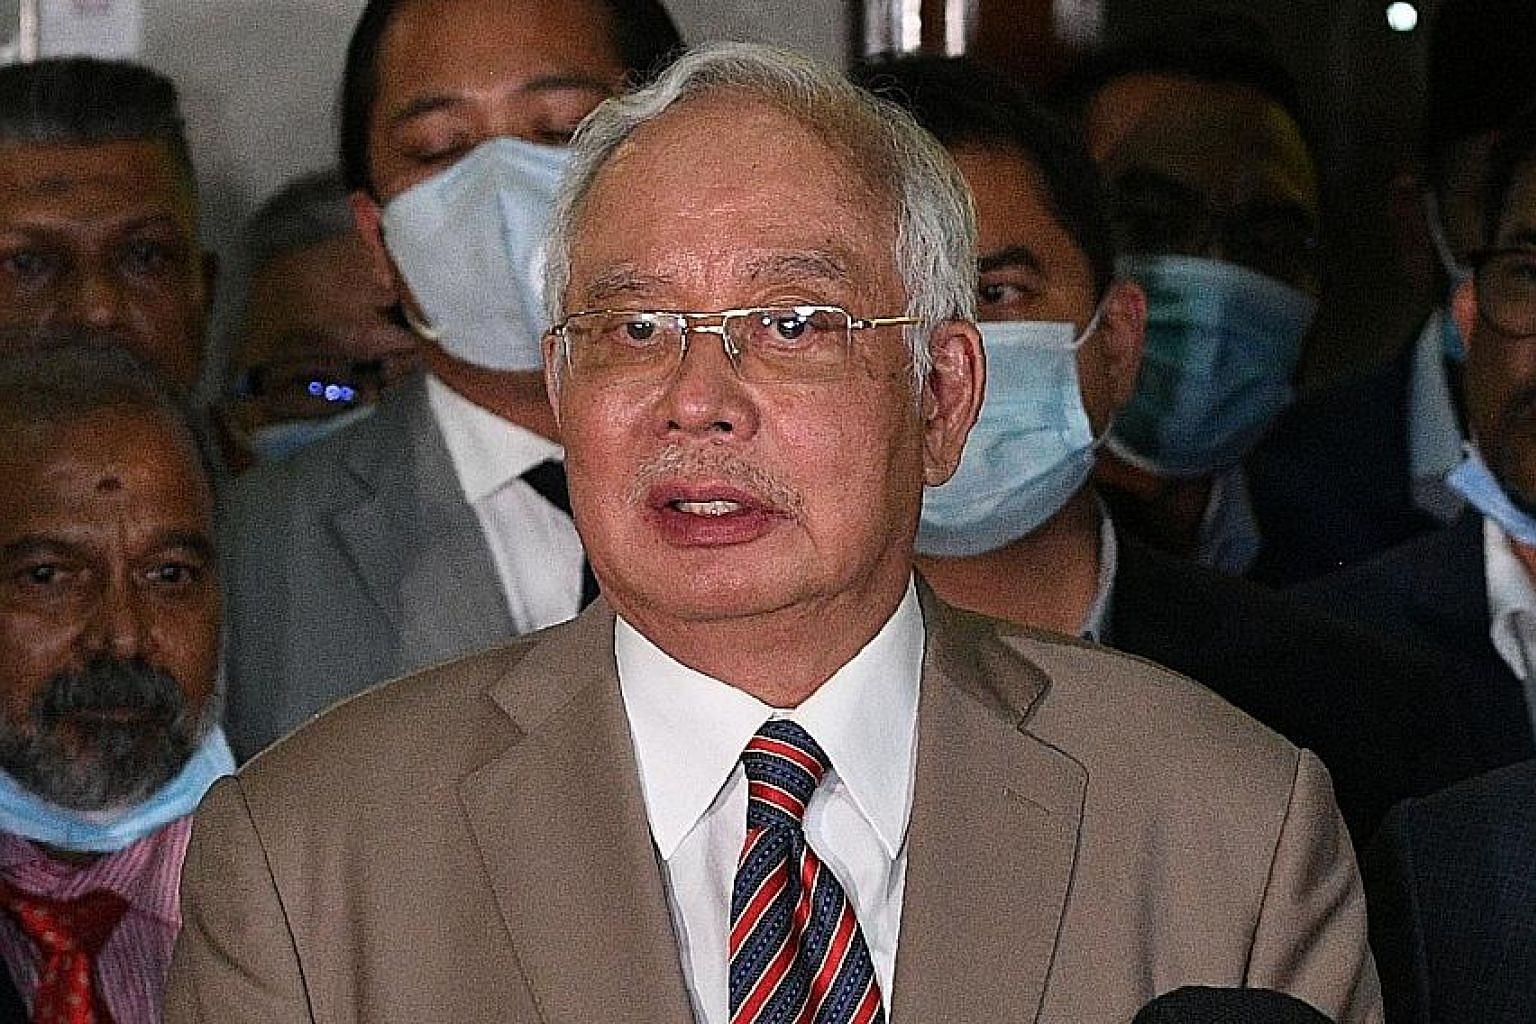 Malaysia's former prime minister Najib Razak has been convicted of seven charges involving the misappropriation of RM42 million (S$13.6 million) in the SRC International case.